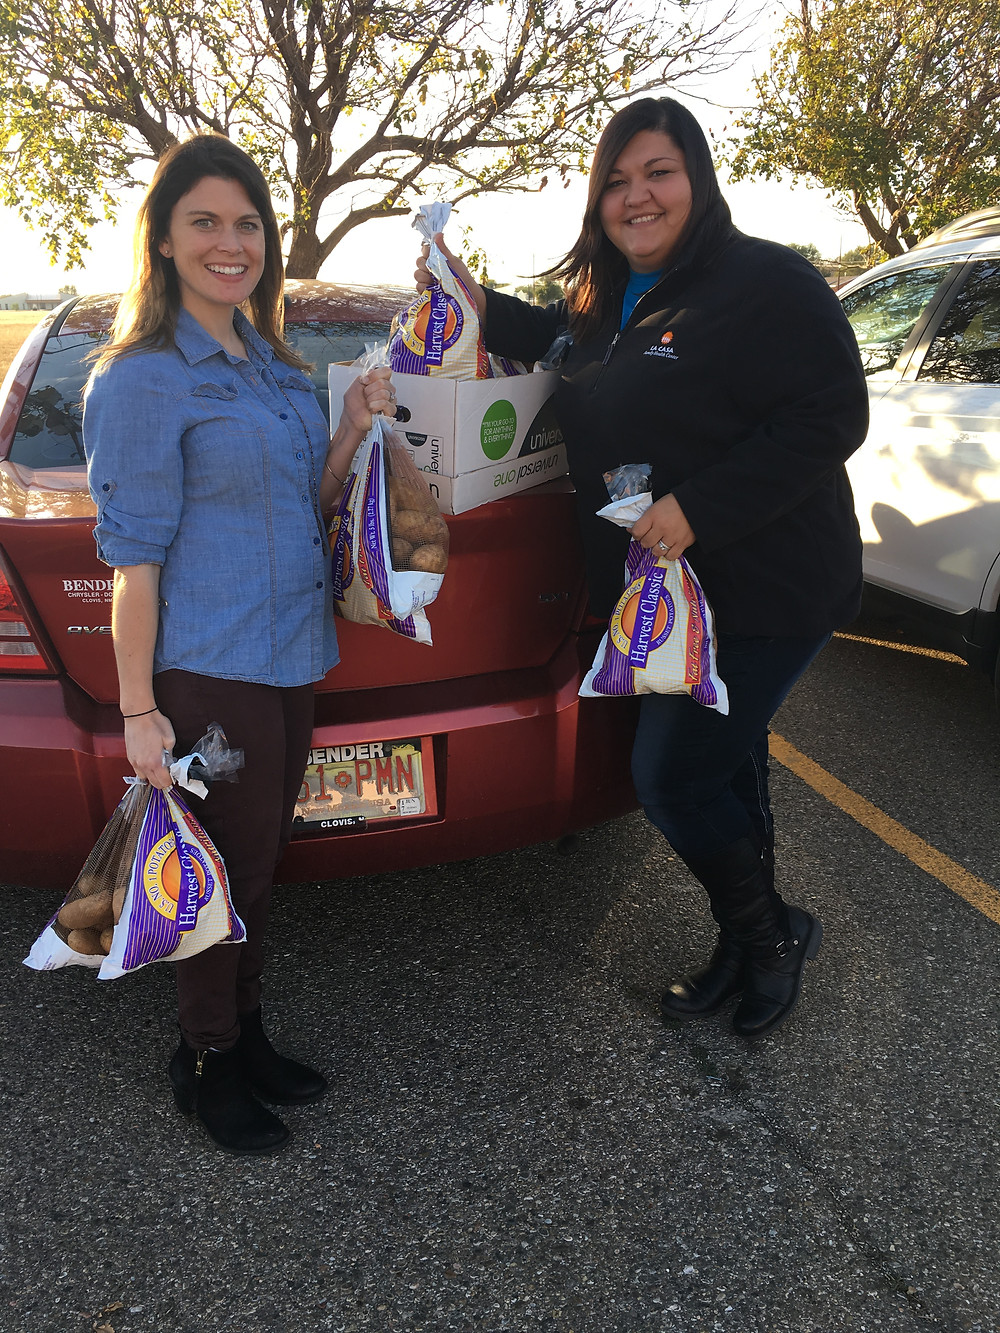 Kaitlyn White, Marketing Director at La Casa Services and Coordinator for Thanksgiving Basket Distribution and Celina Stroup, HR at La Casa unloading the 10 bags of potatoes Stroup brought in for the Thanksgiving Baskets. Photo by Jena Slater